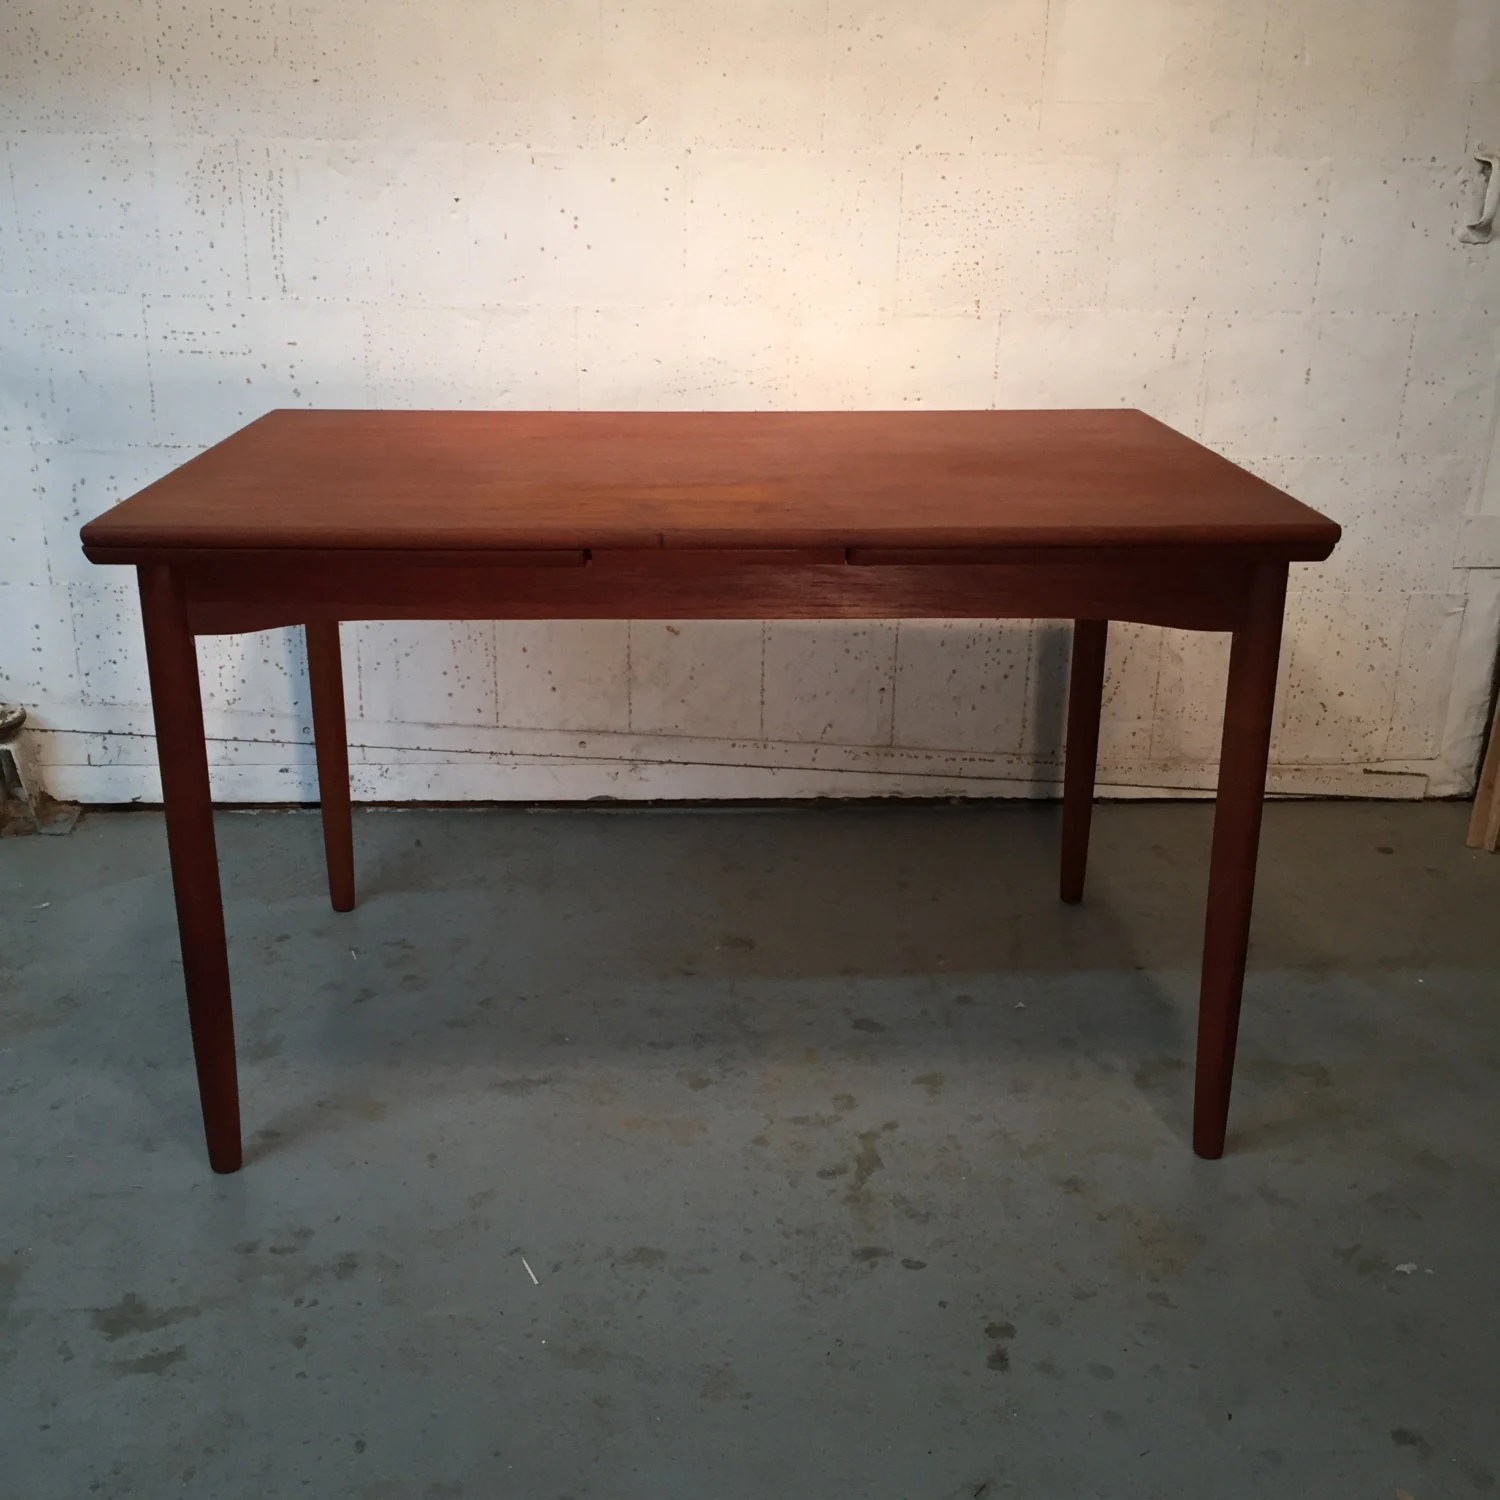 danish mid century modern teak dining table 725 obo free nyc